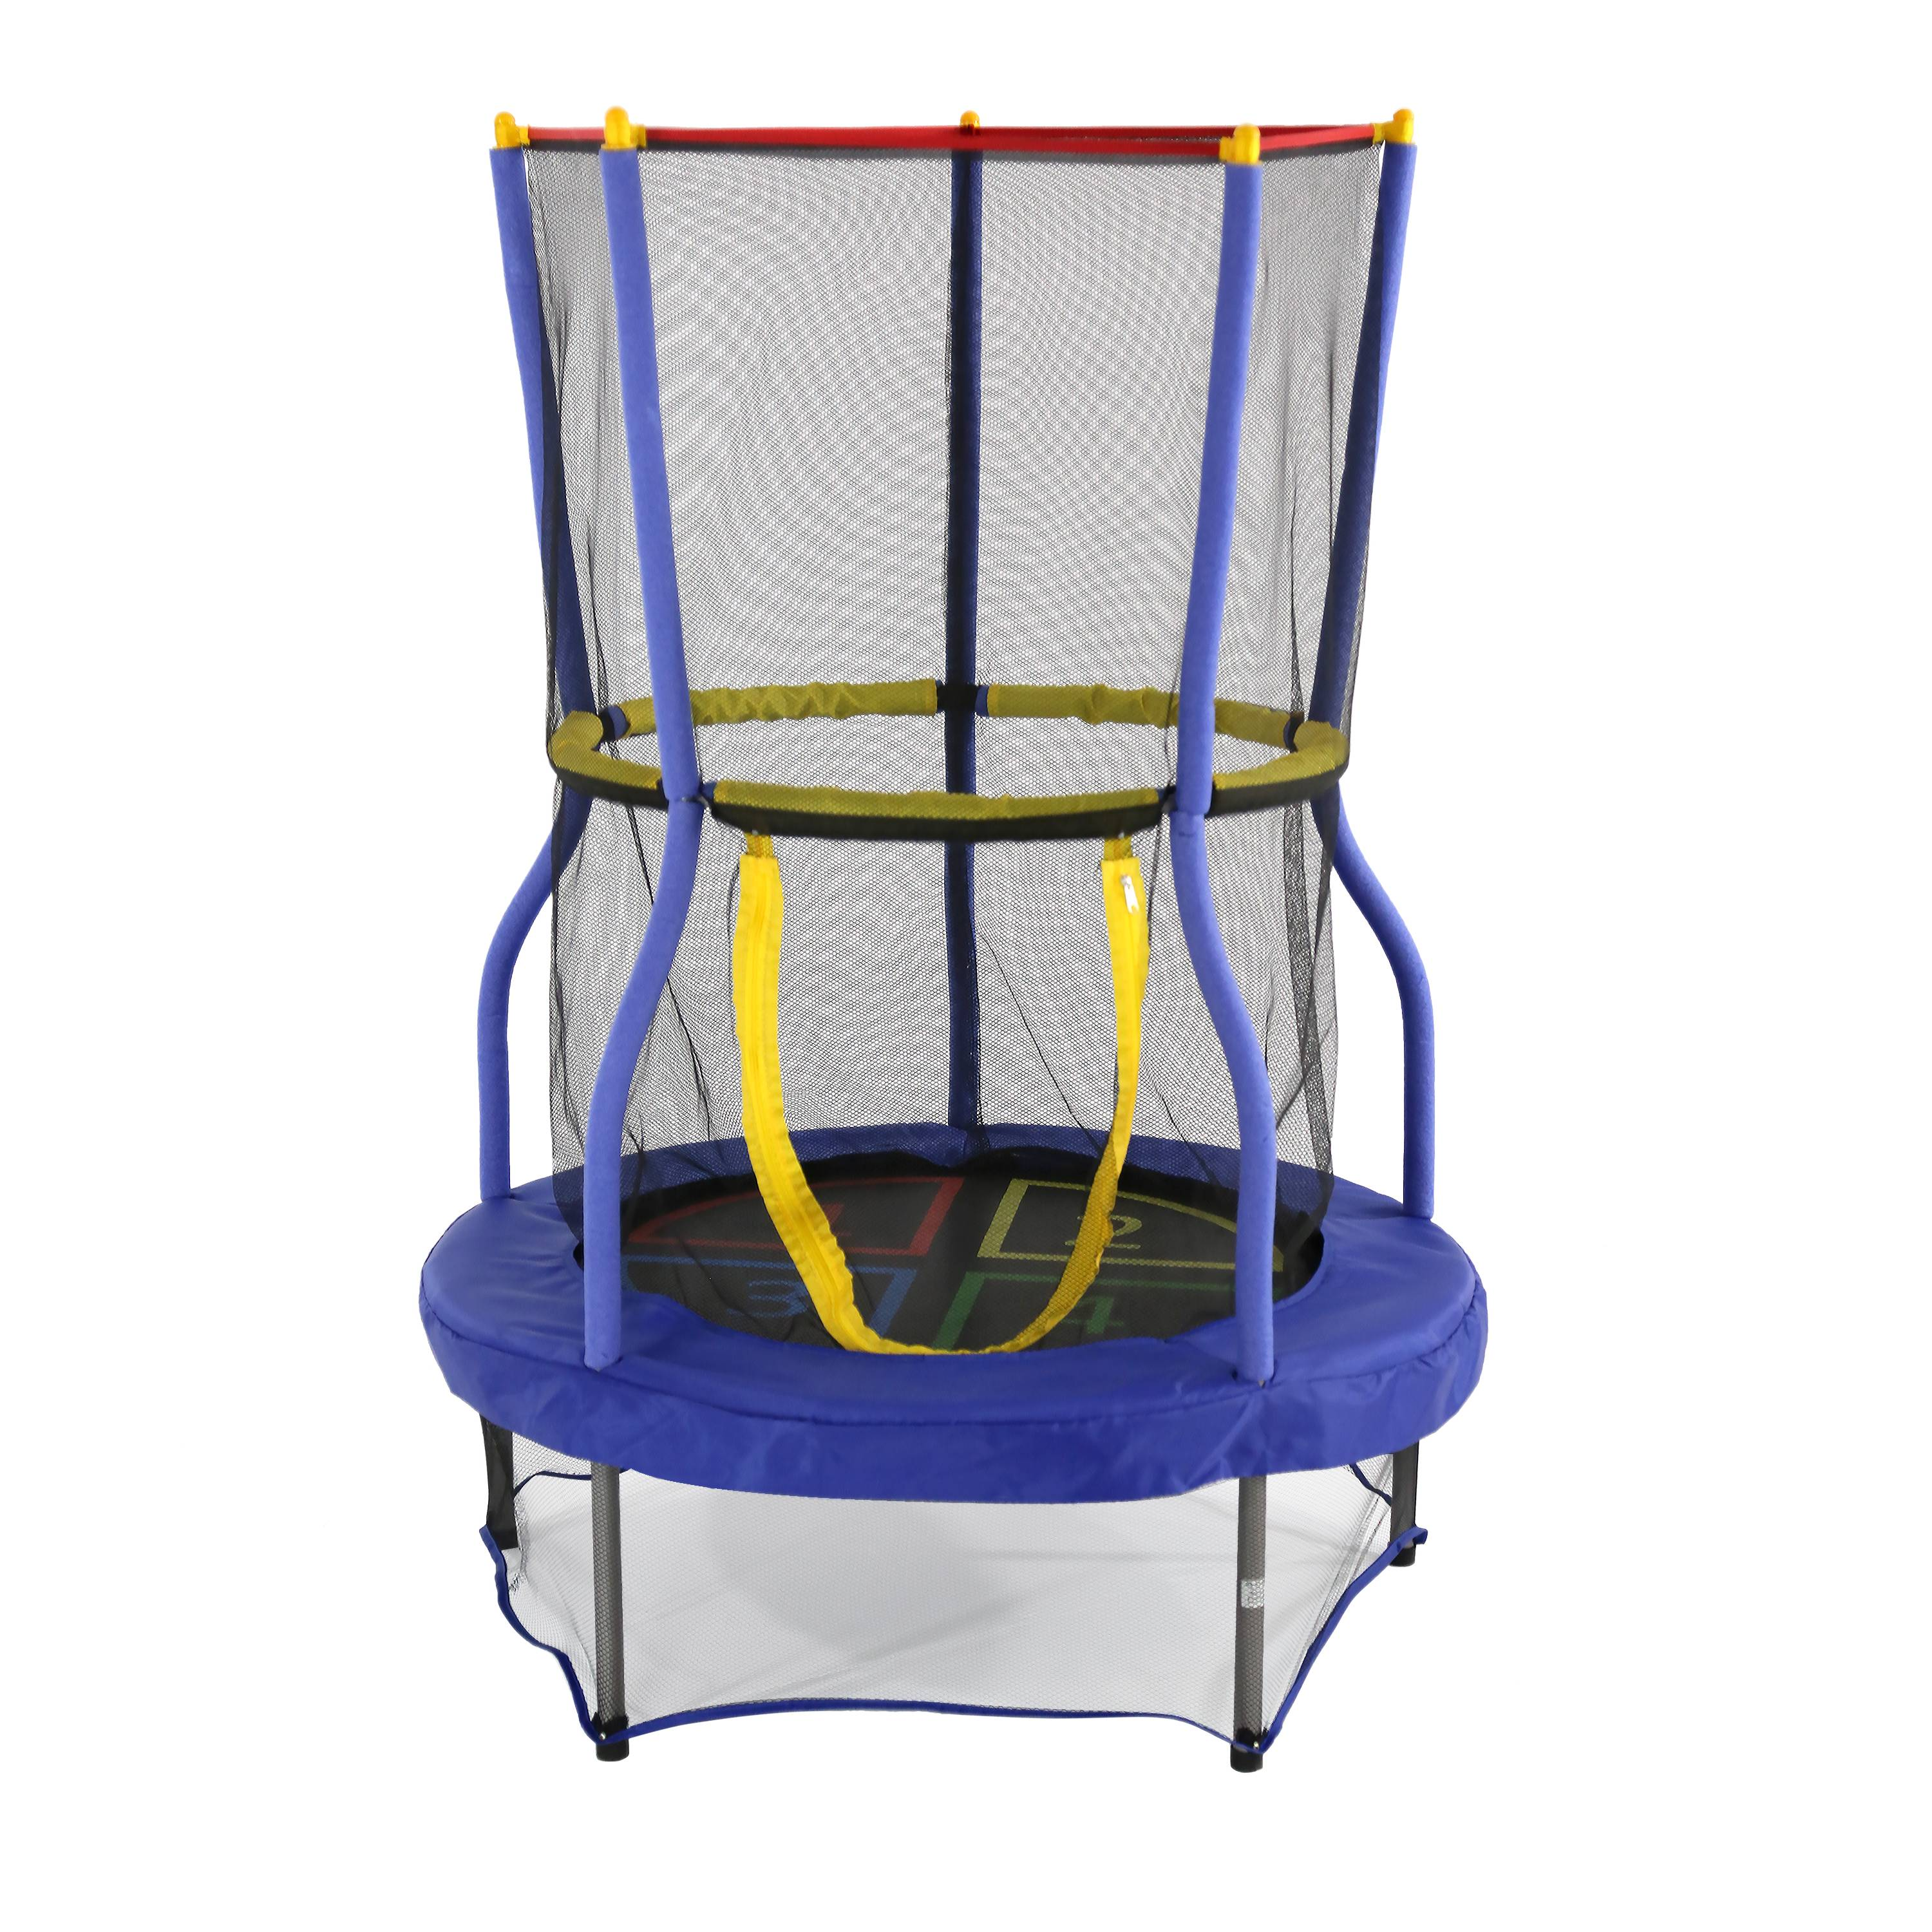 "Skywalker Trampolines 40"" Bounce-N-Learn Trampoline Mini Bouncer with Enclosure"